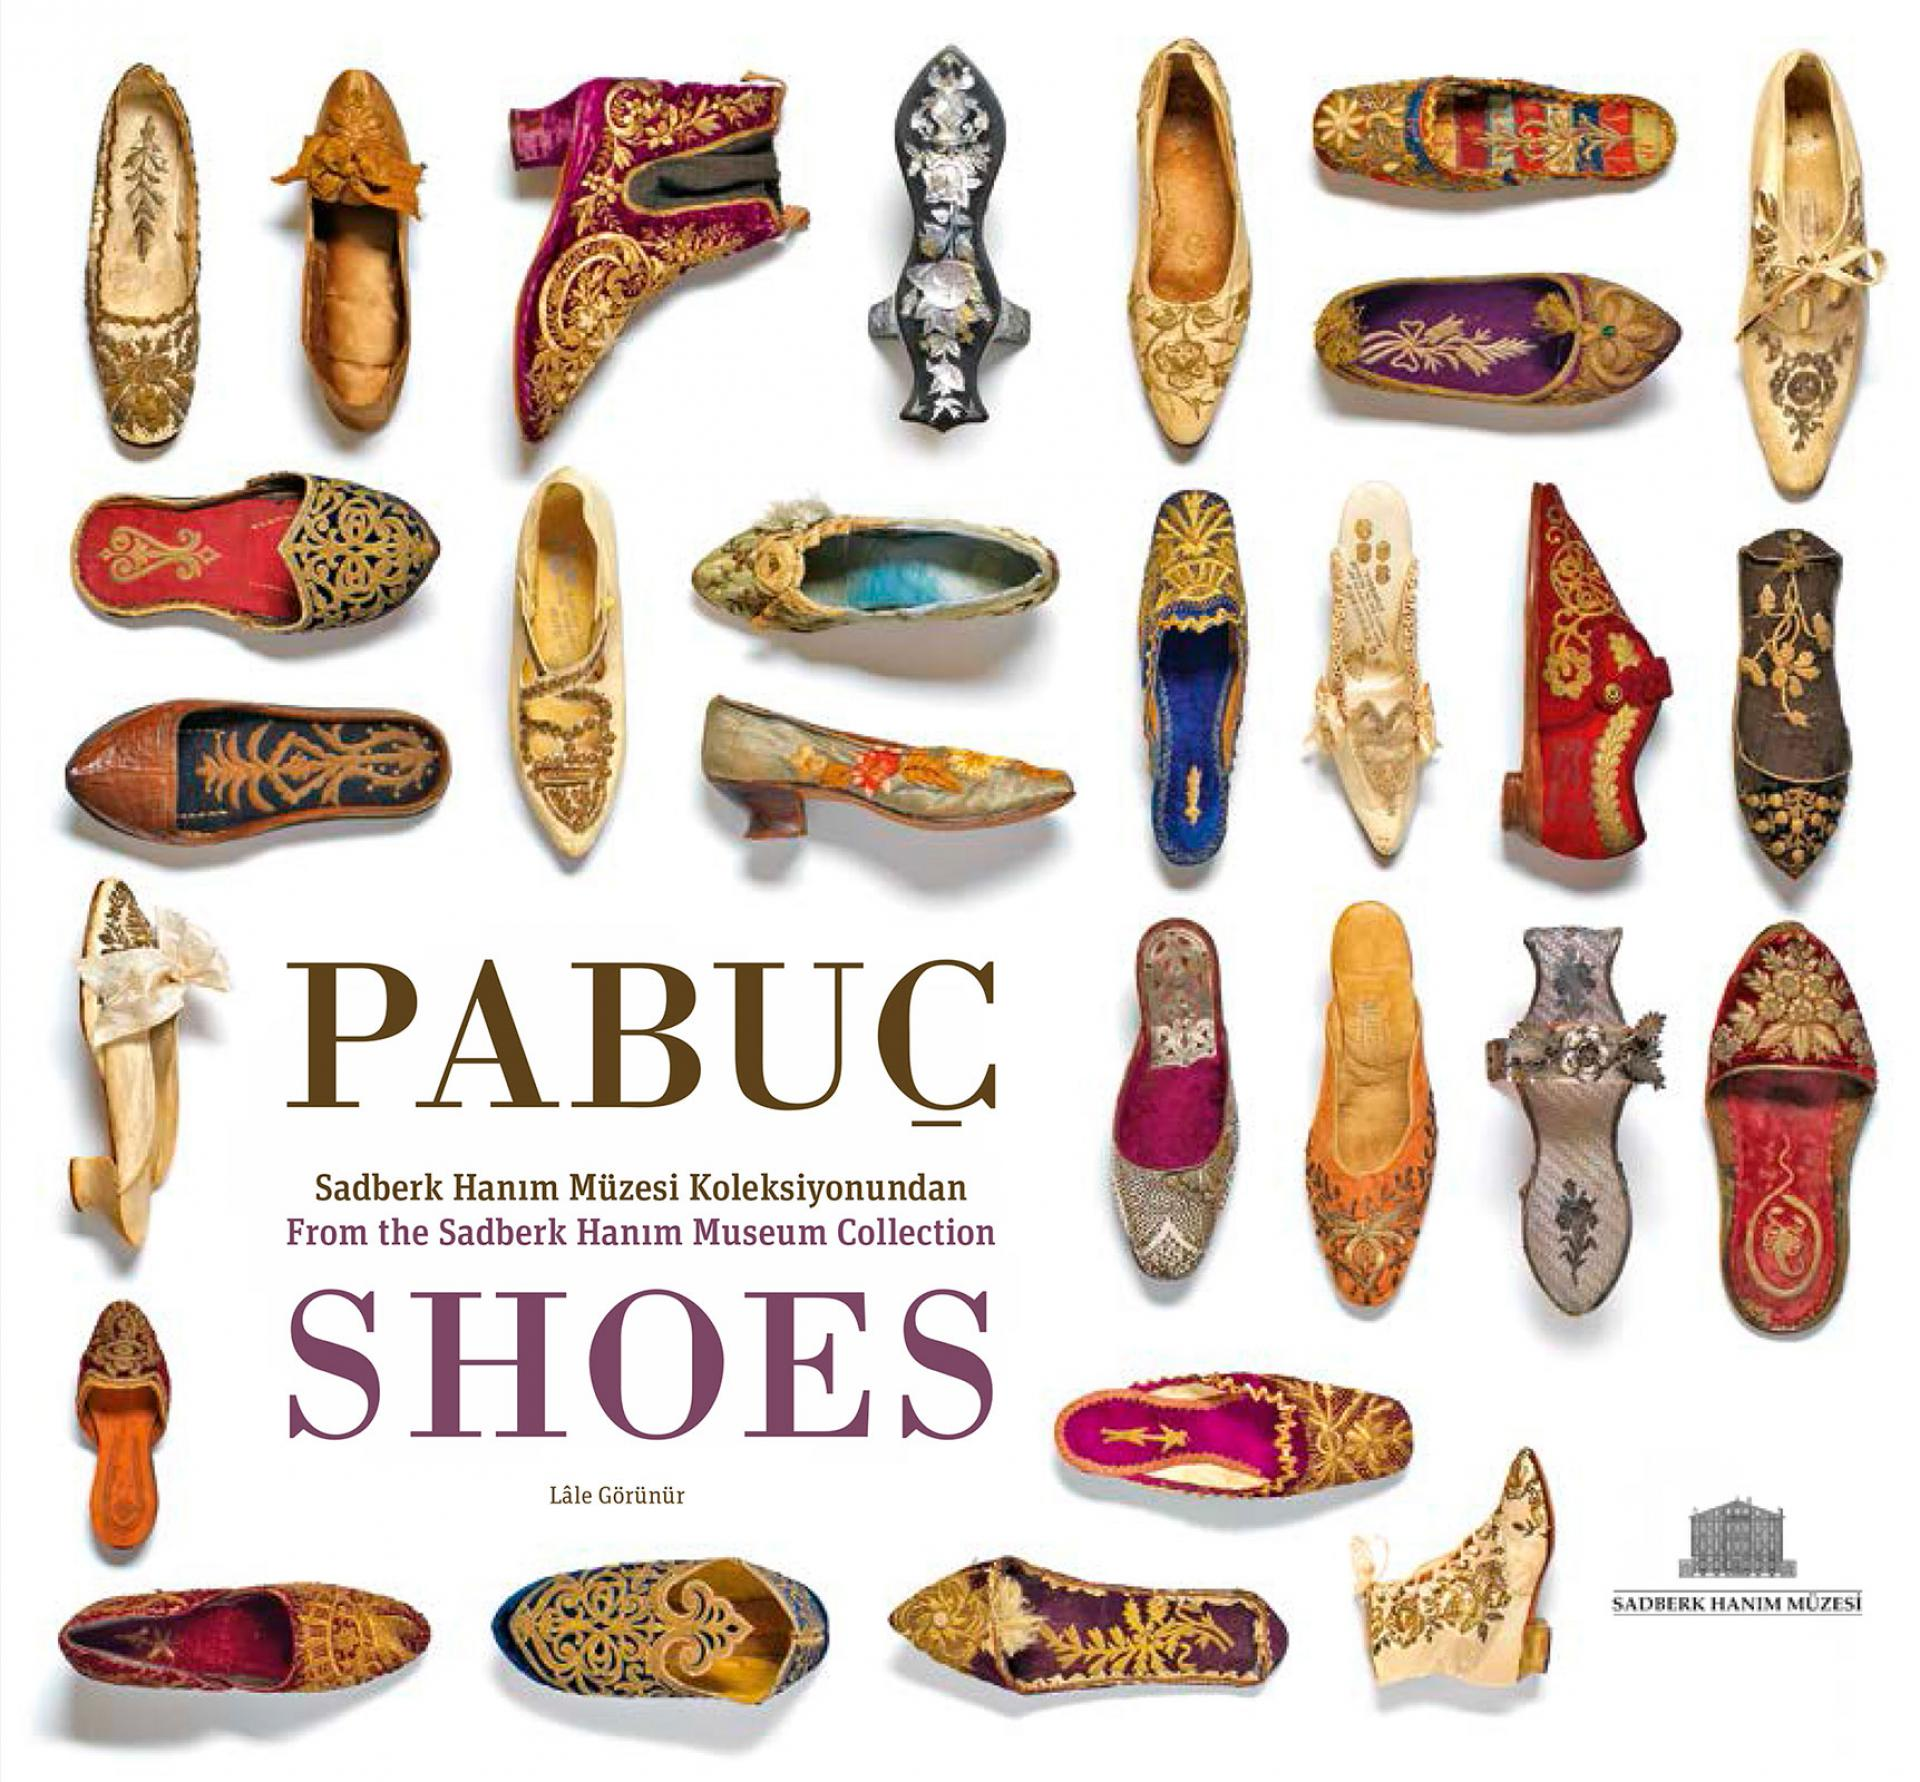 Shoes - From the Sadberk Hanım Museum Collection - BOOKS - Sadberk Hanım Museum